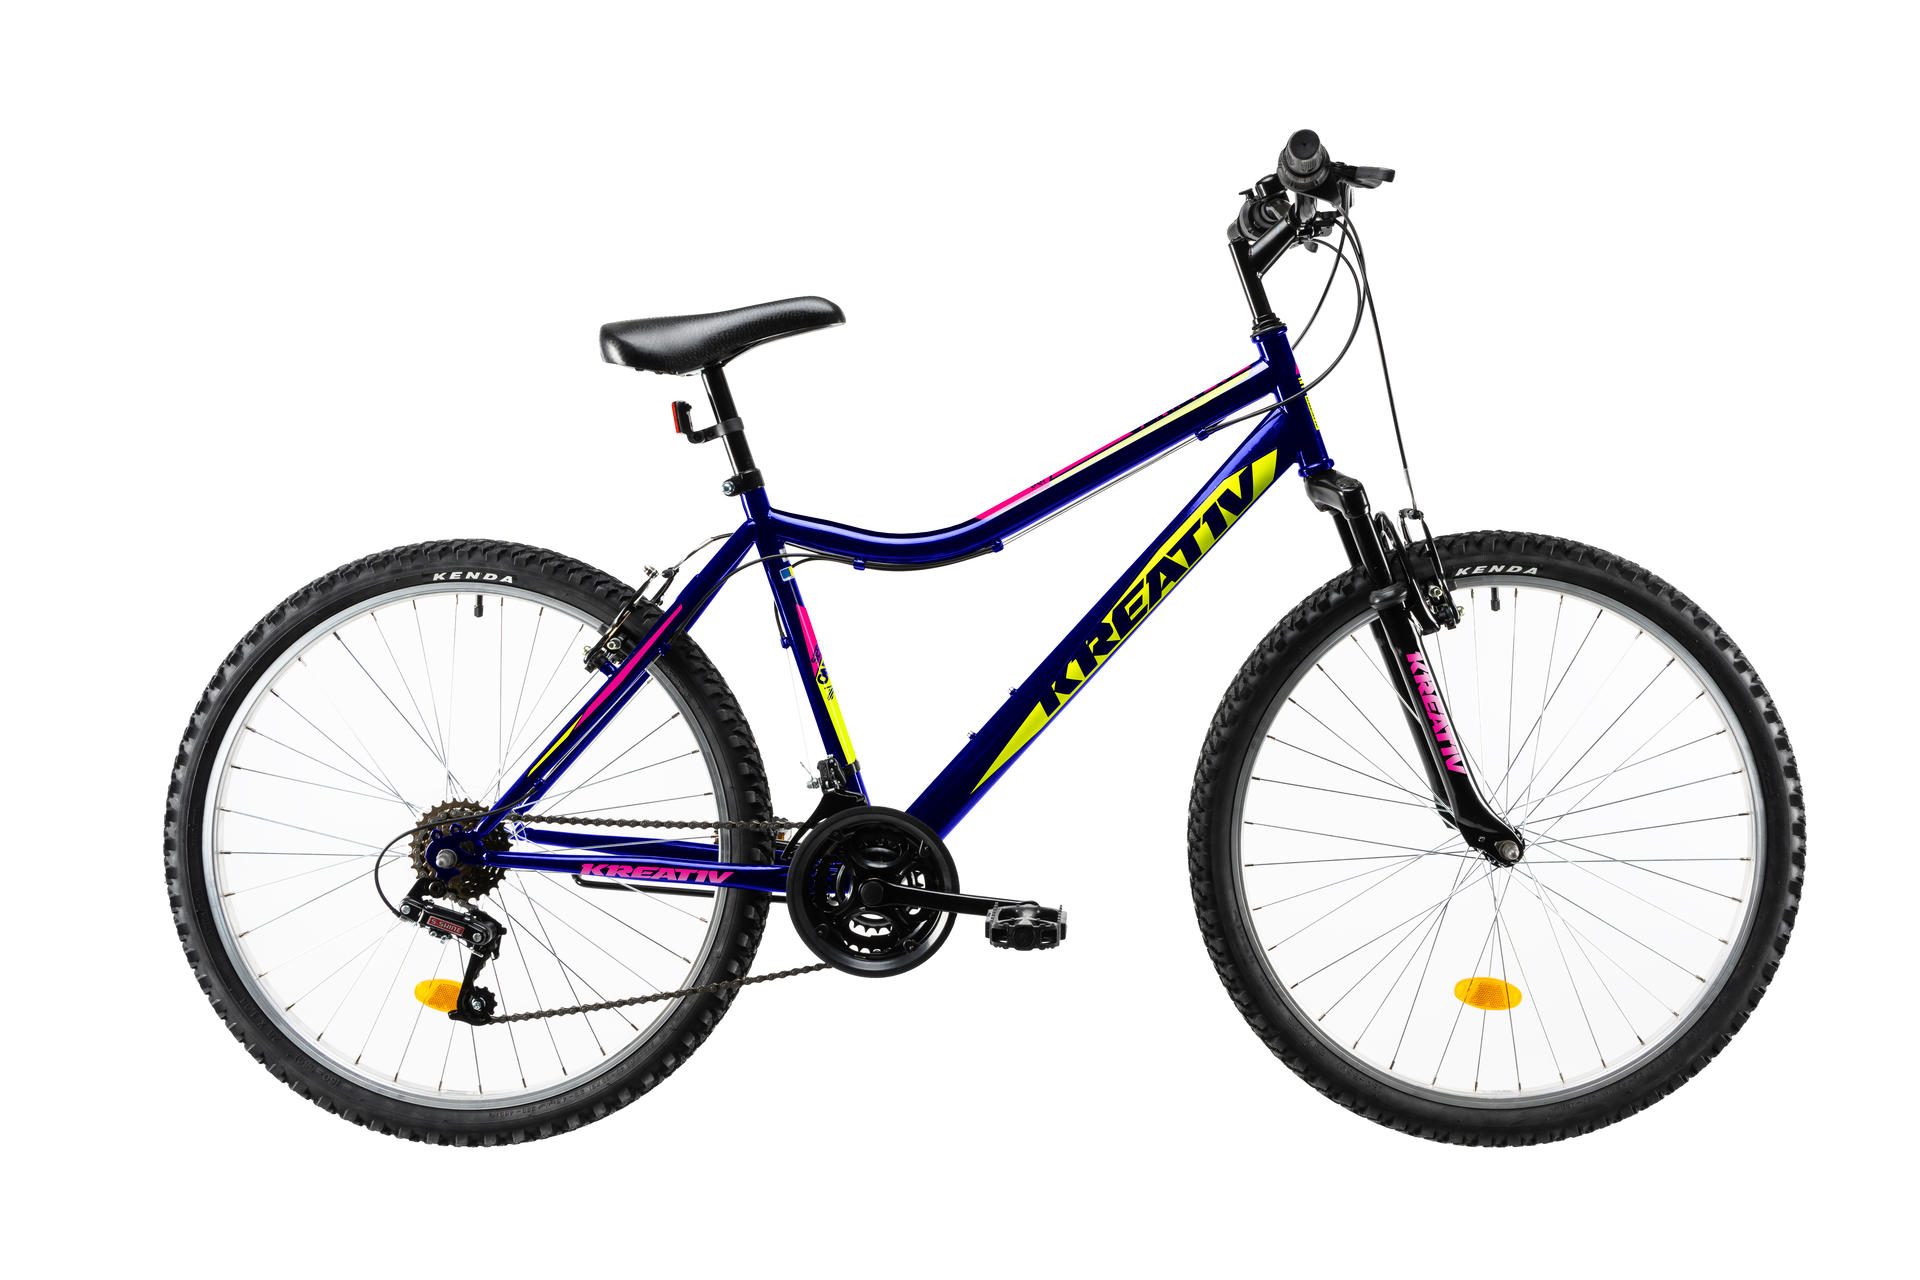 Mountain bike KREATIV 2604 Blue